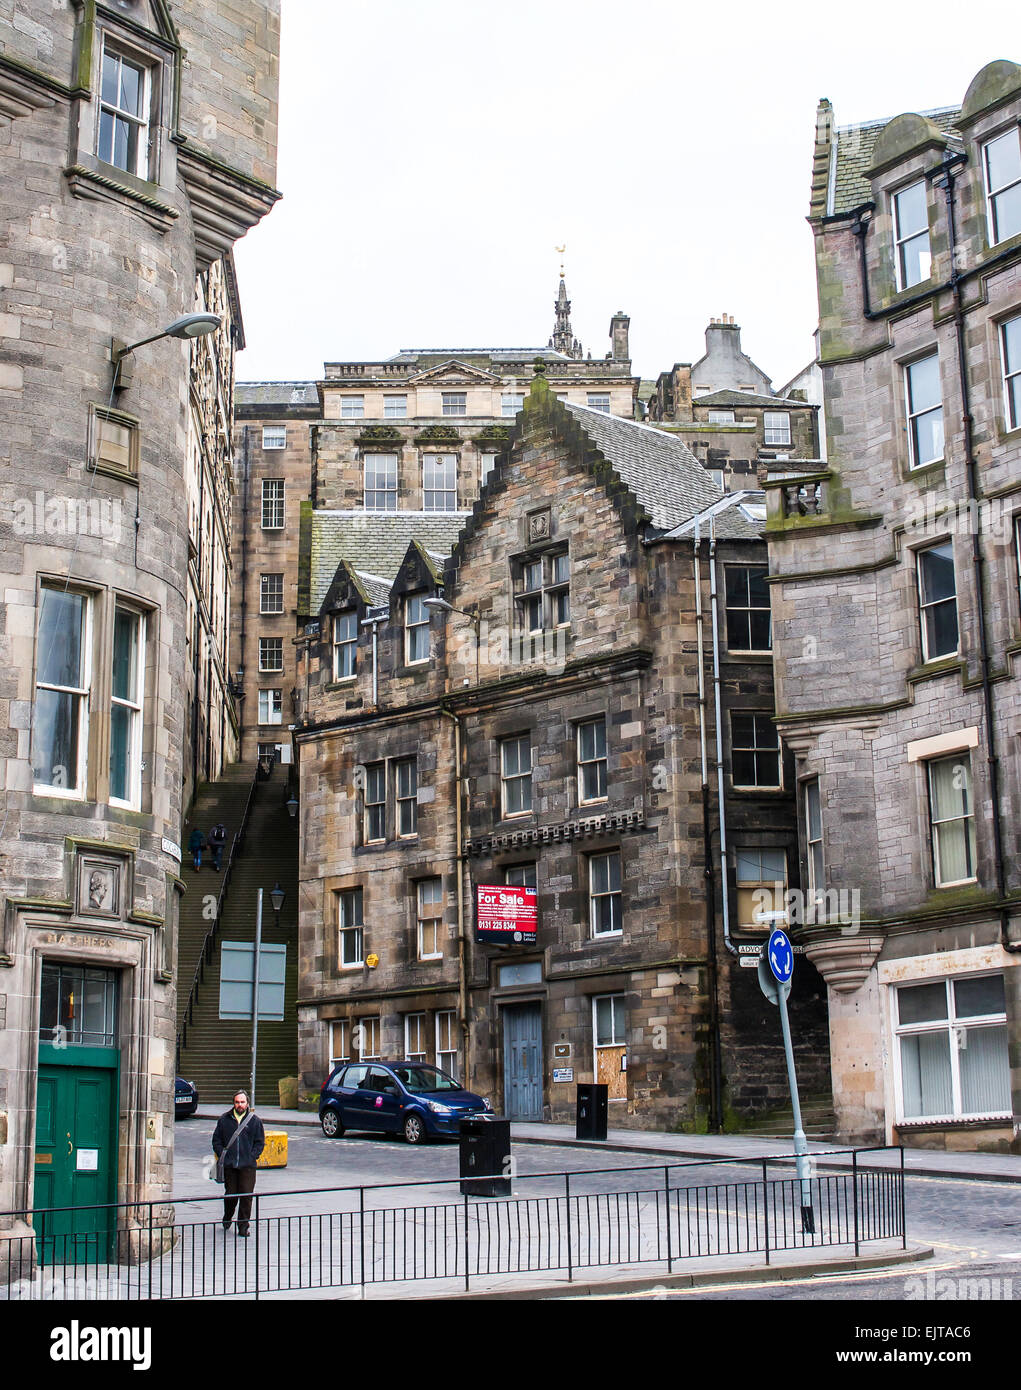 A typical street scene in Edinburgh, Scotland which is full of winding streets and steep stairways to connect the - Stock Image